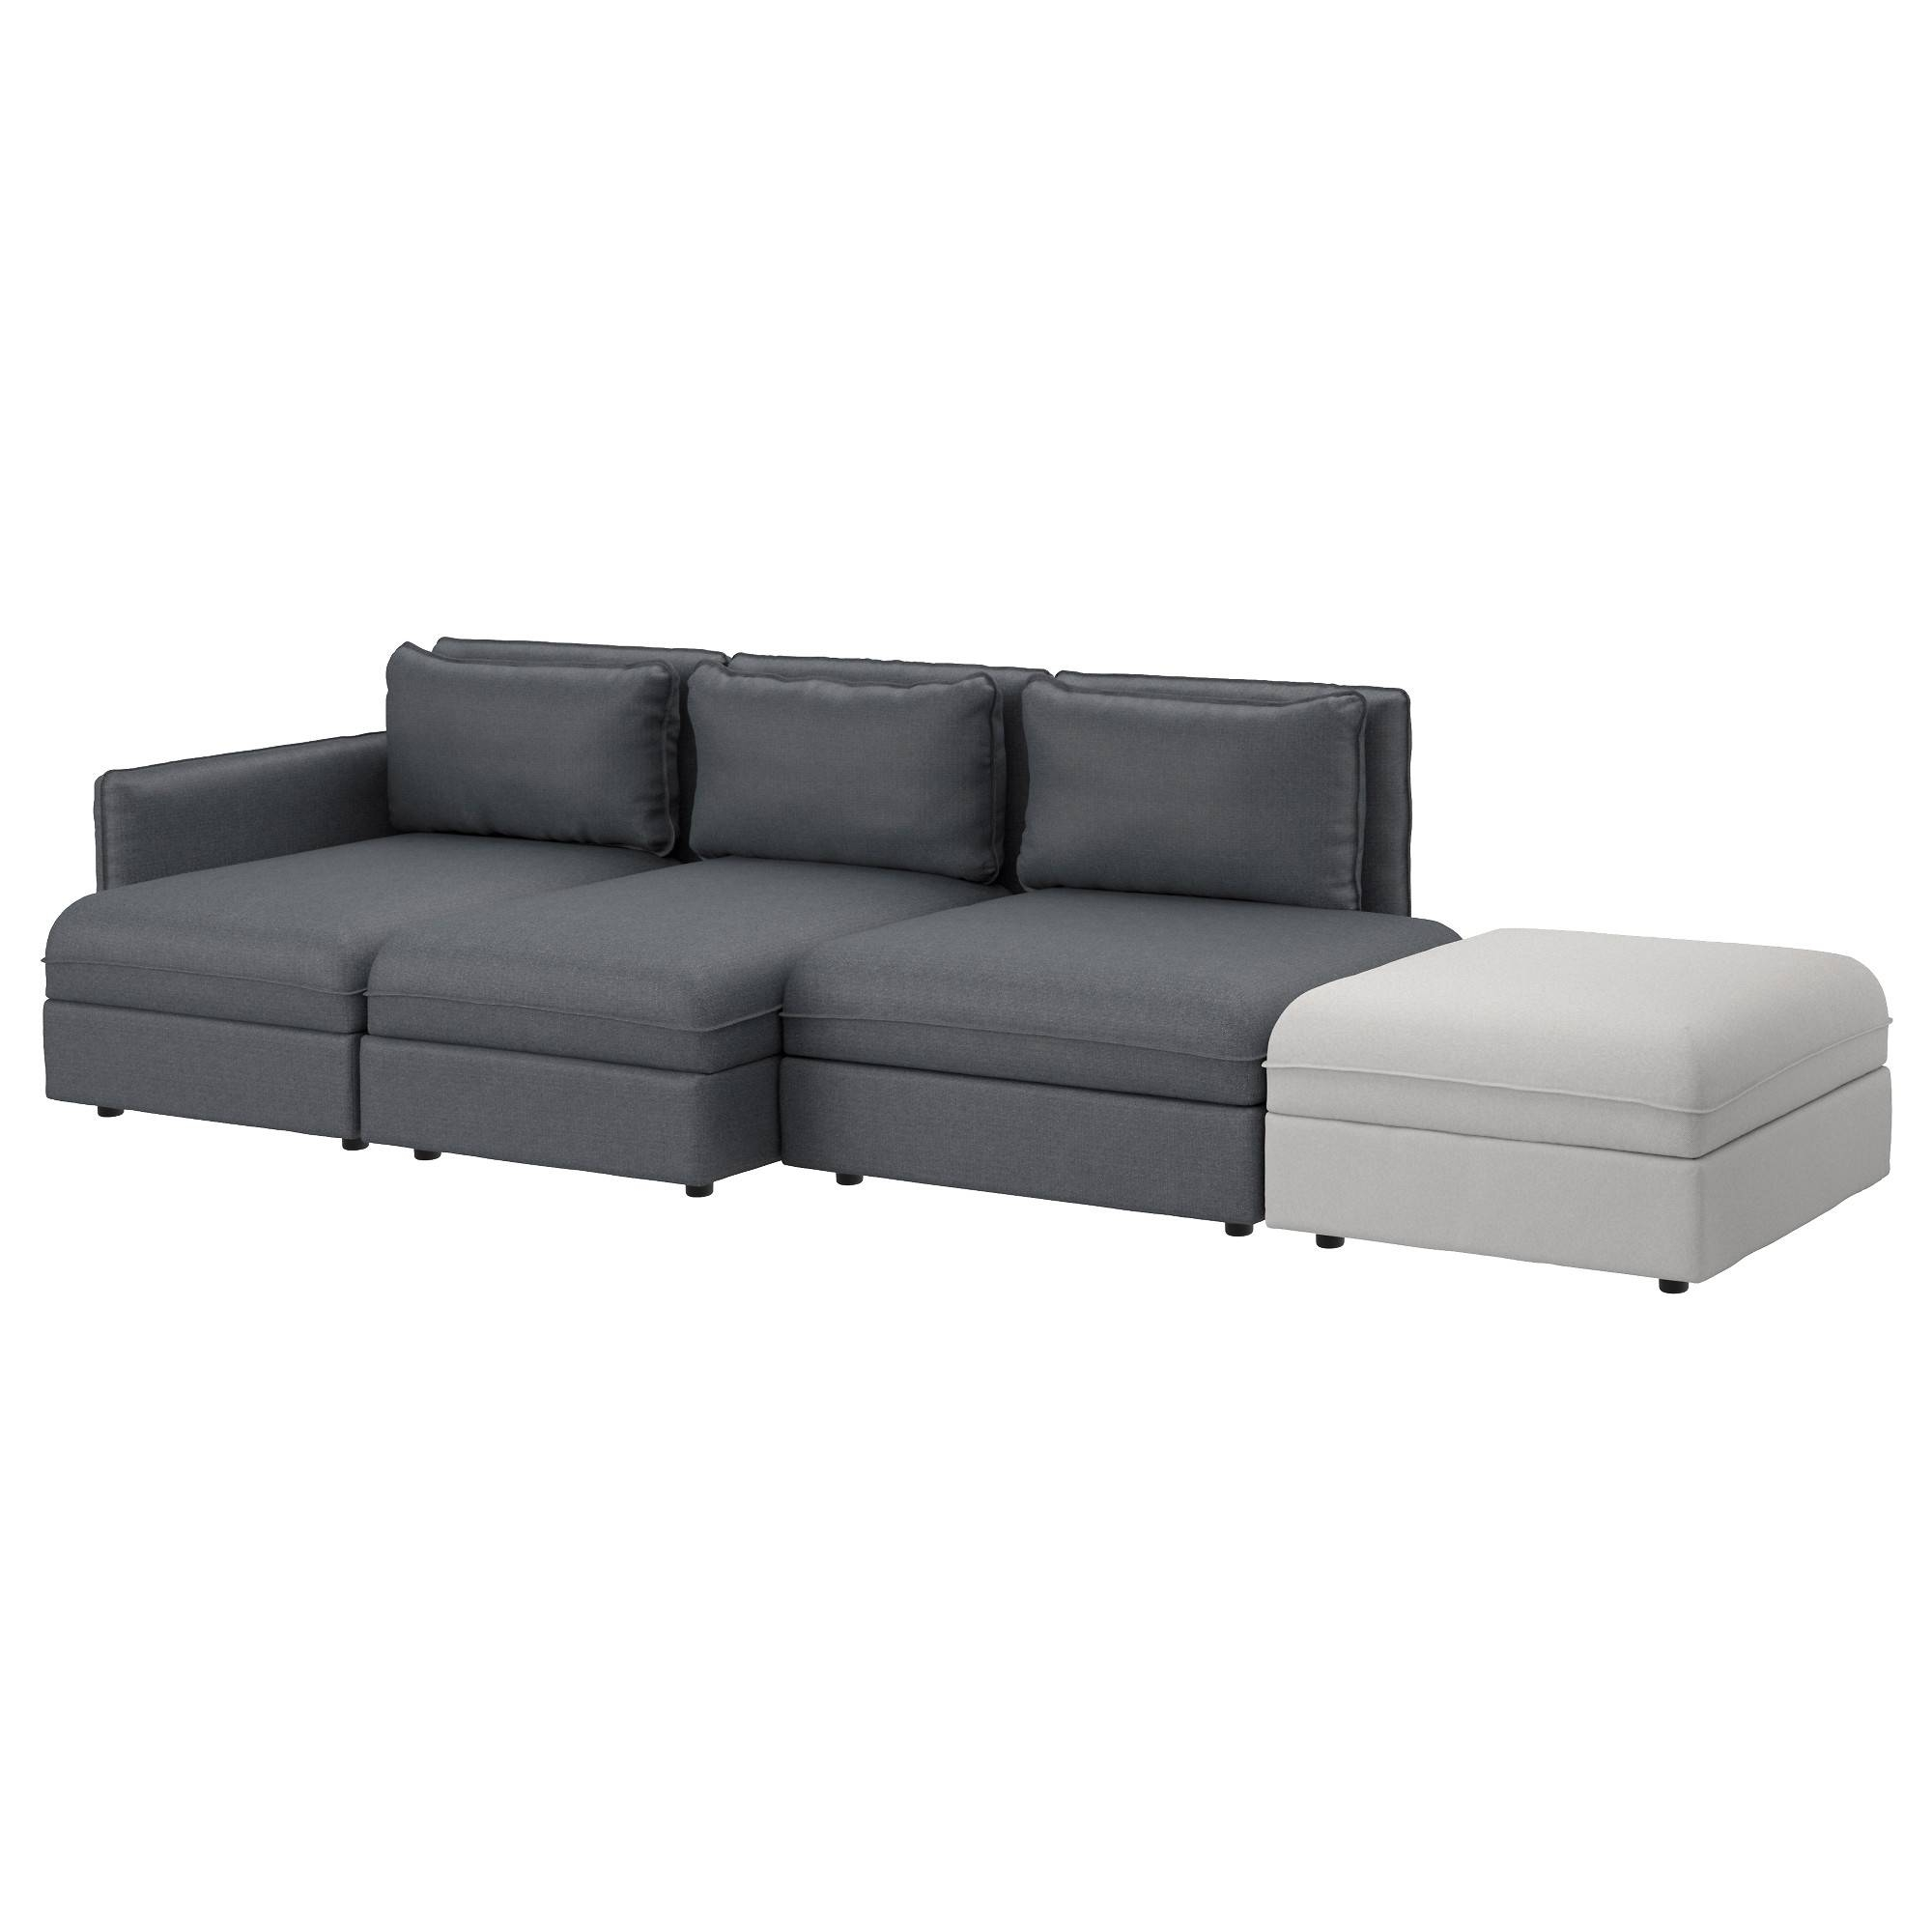 30 Best Collection Of 45 Degree Sectional Sofa